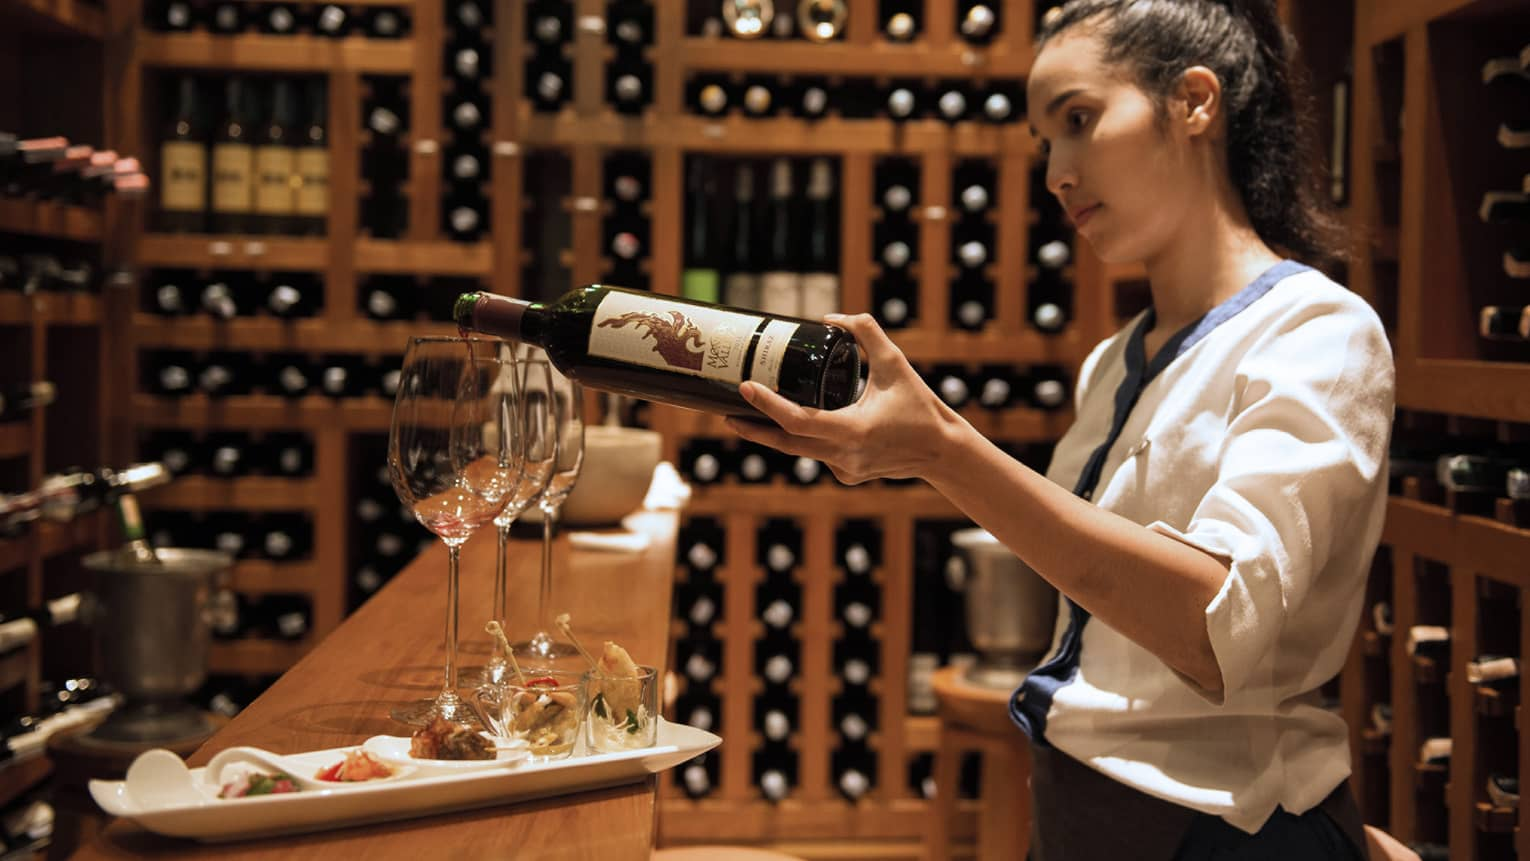 Sommelier at Koh Bar, pouring Thai wine for a guest